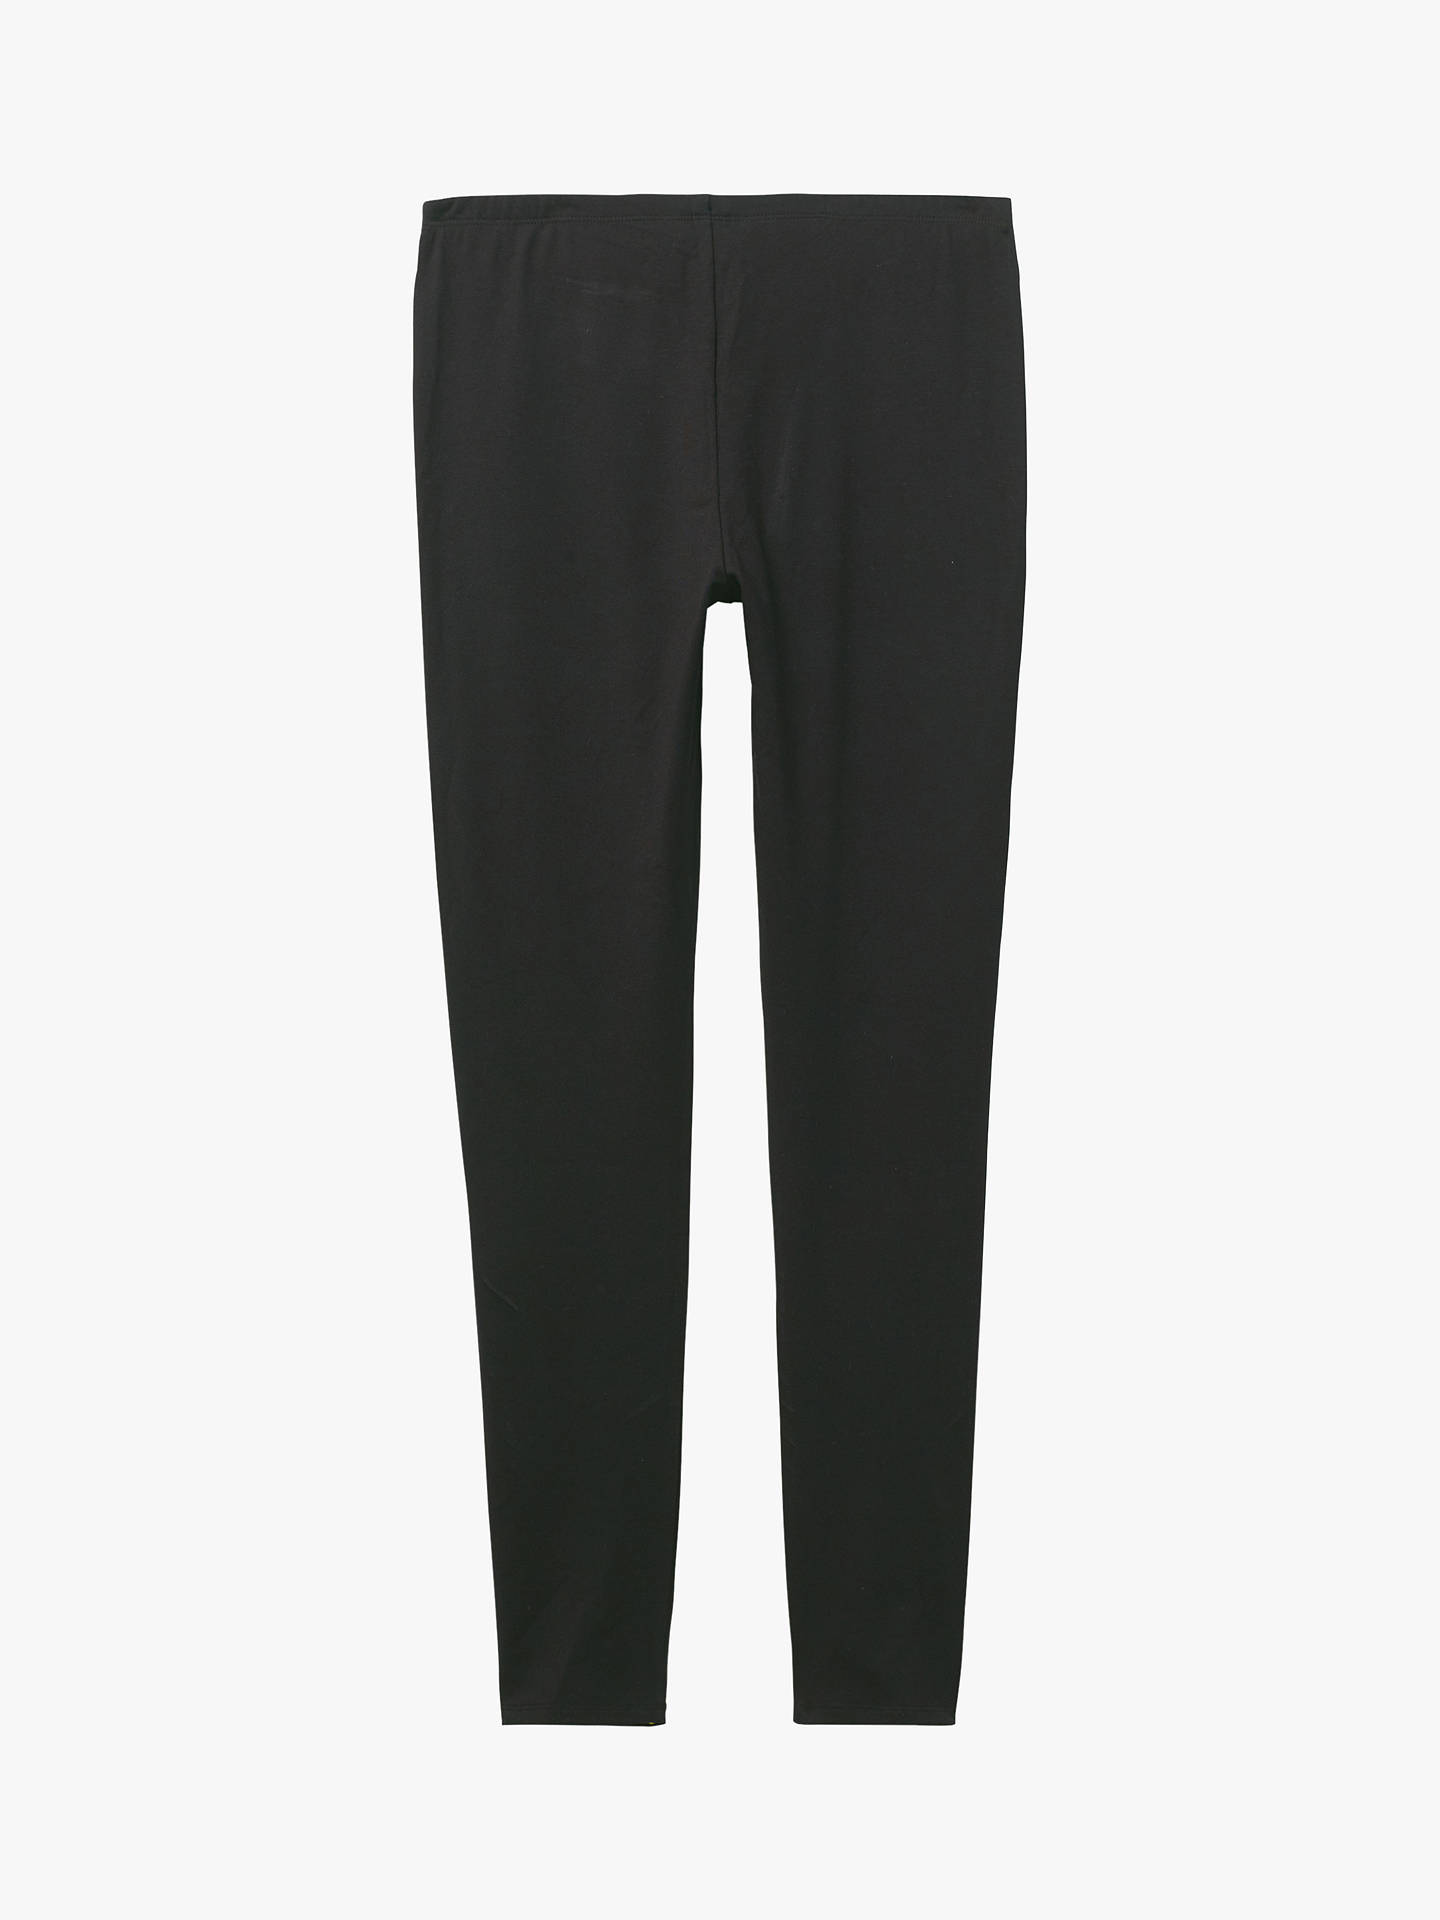 BuyWhite Stuff Jumping Lil Leggings, Grey, 6S Online at johnlewis.com